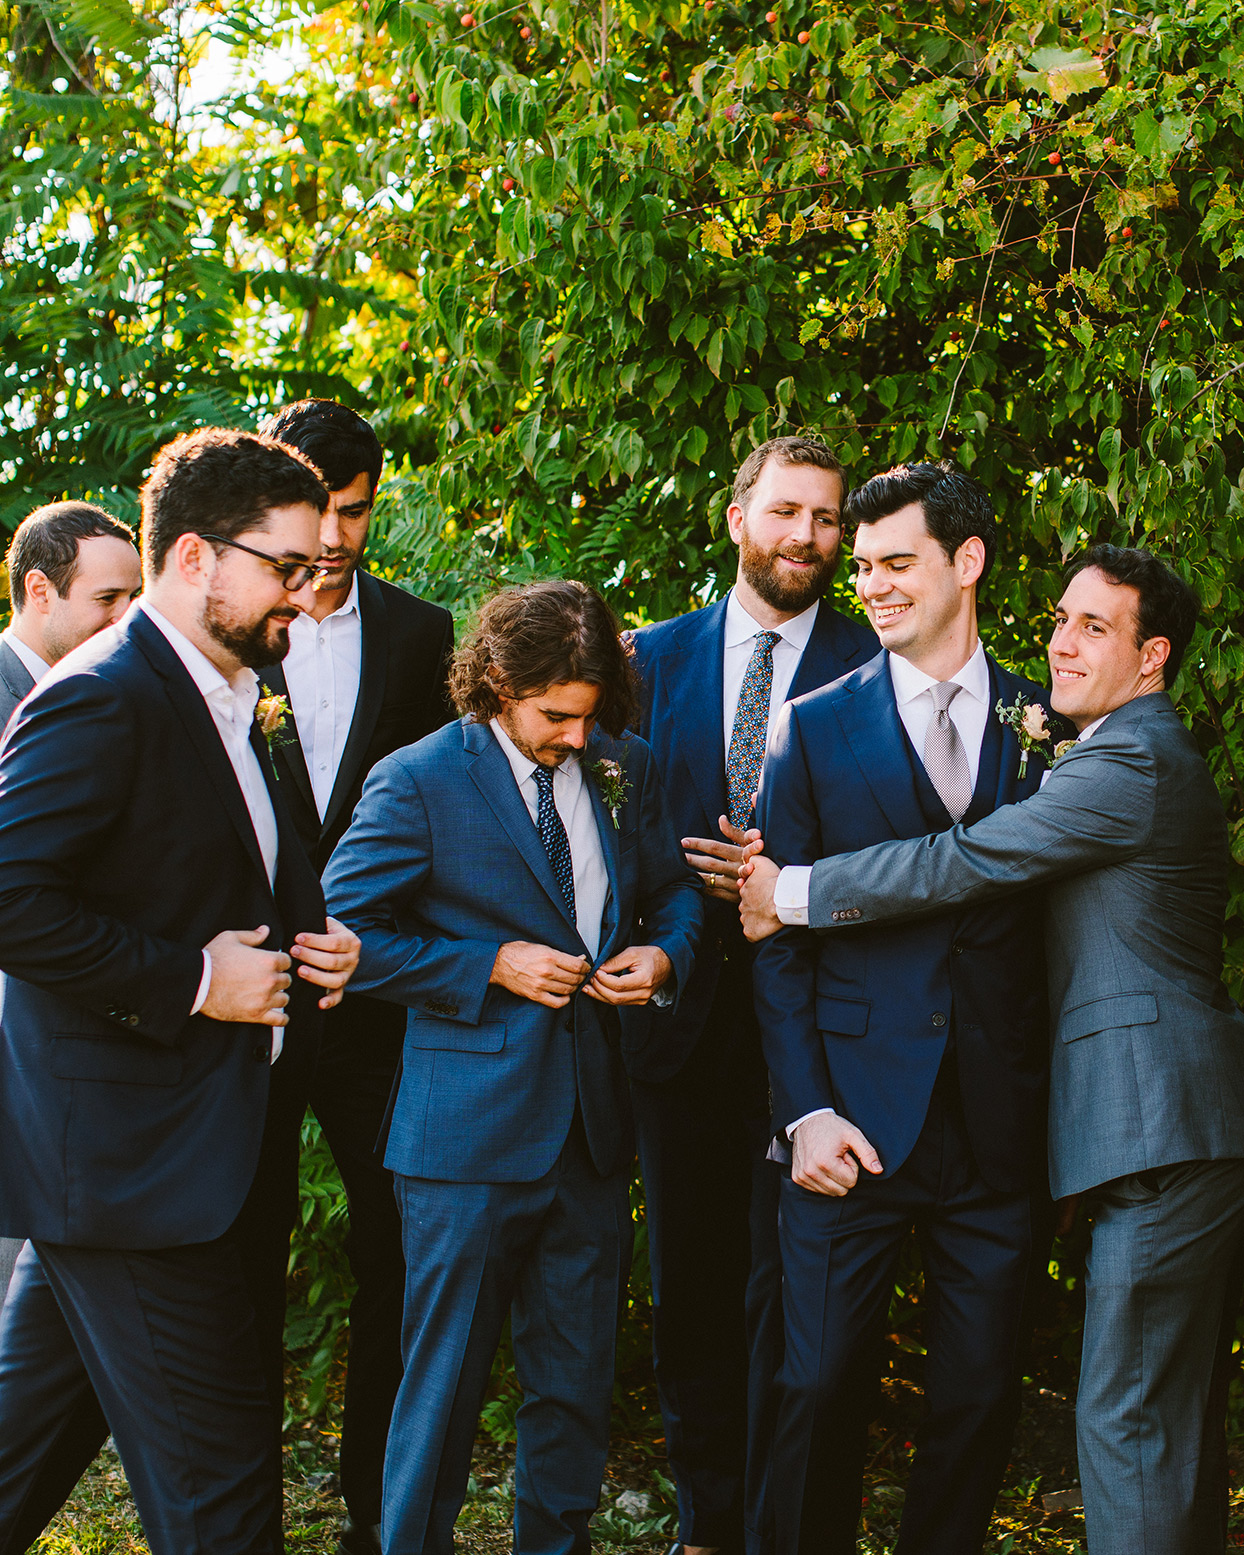 groomsmen adjusting suits in front of greenery